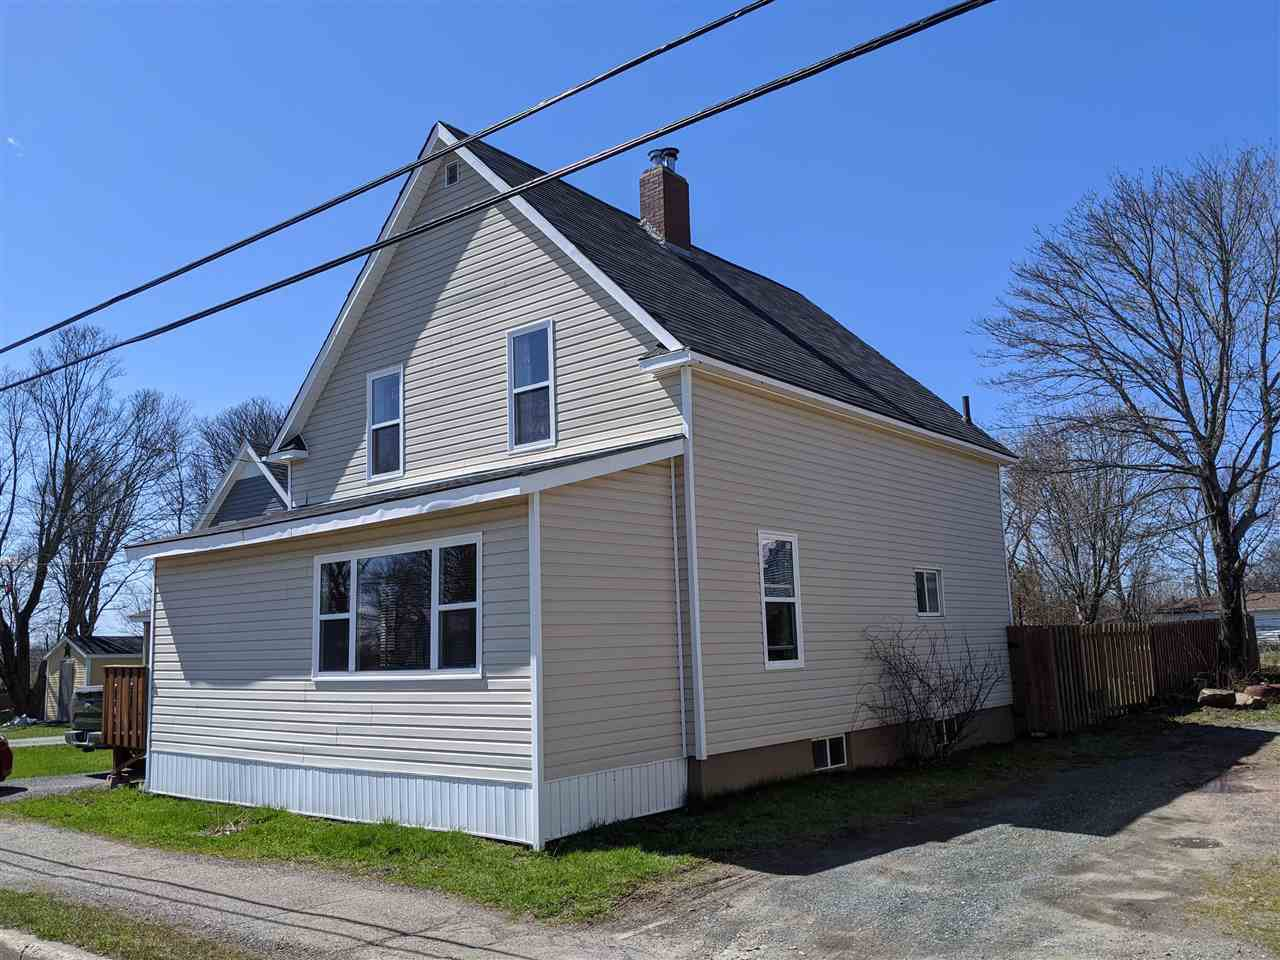 Main Photo: 2112 Church Street in Westville: 107-Trenton,Westville,Pictou Residential for sale (Northern Region)  : MLS®# 202007598